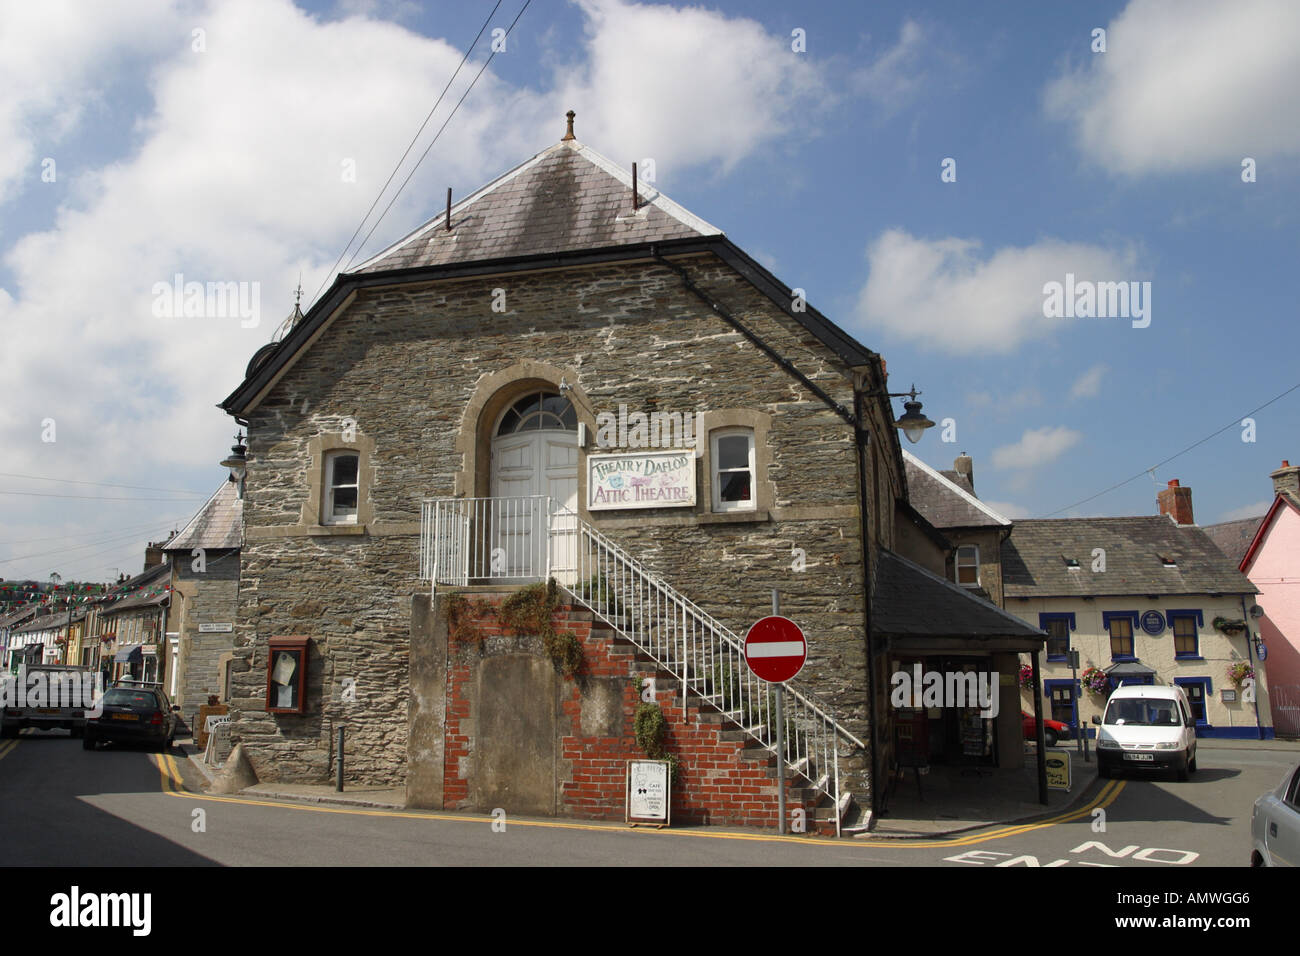 Newcastle Emlyn The Little Attic theatre Carmathanshire Wales - Stock Image